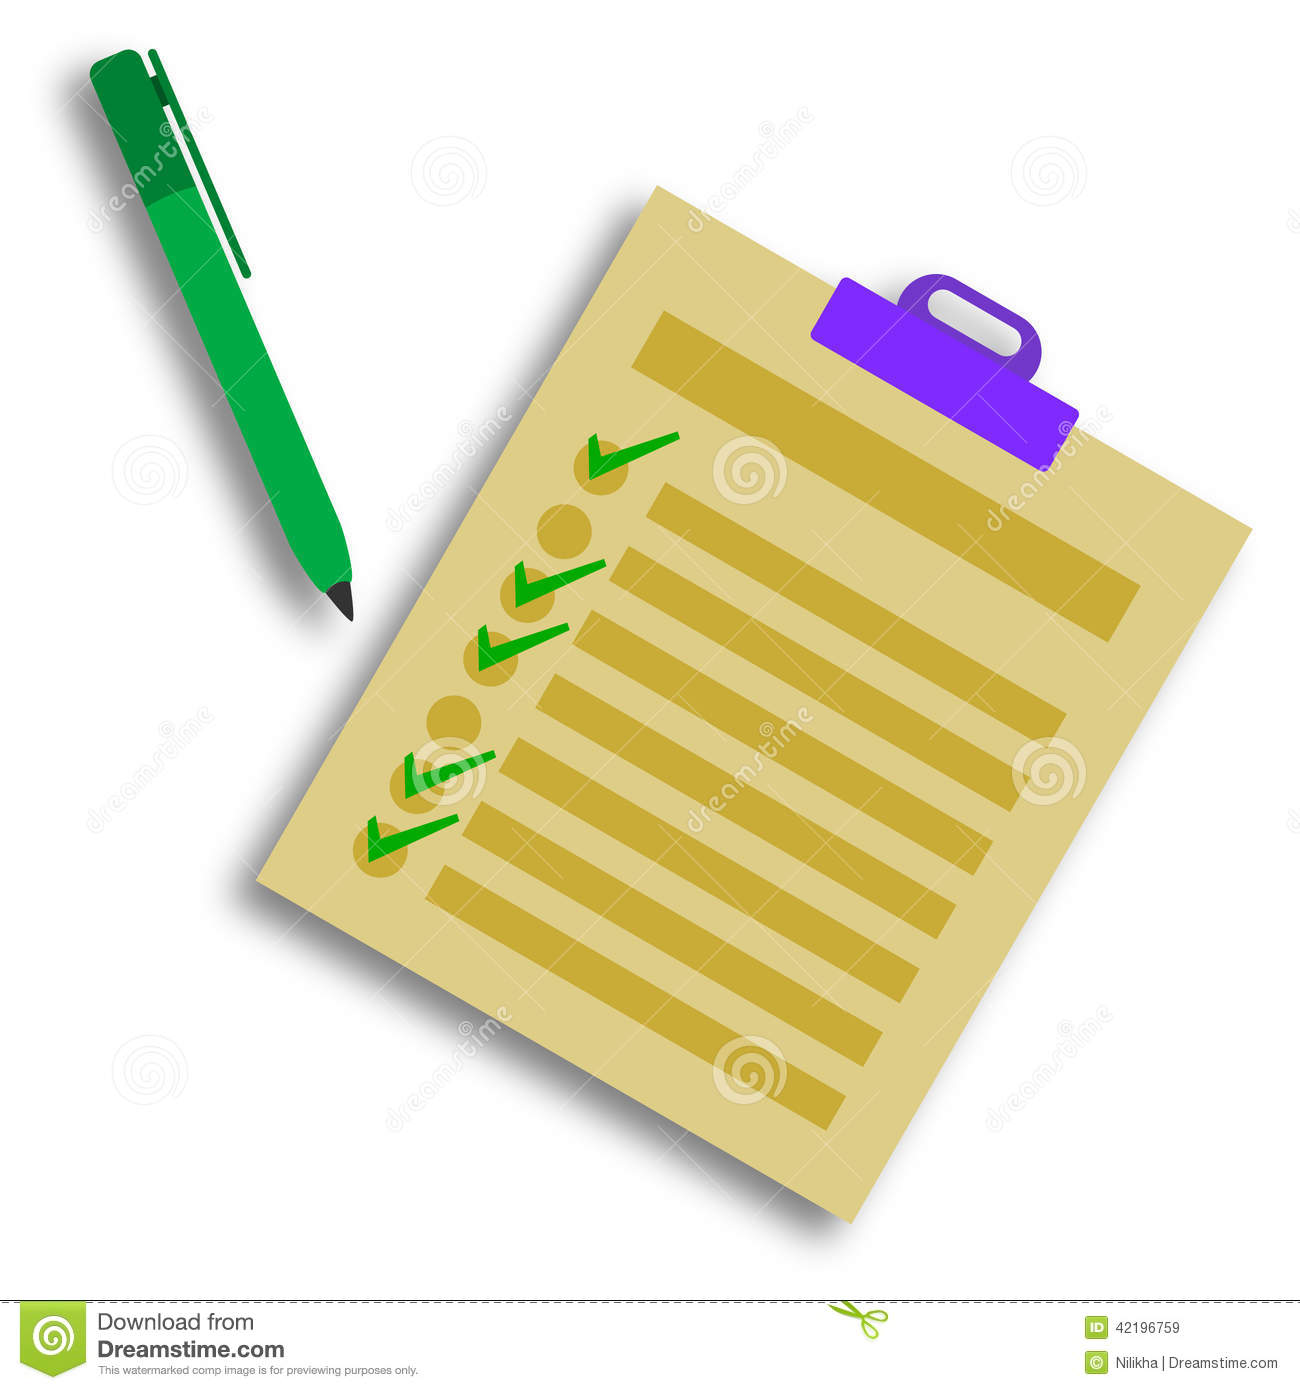 No Credit Check Credit Cards >> Check List Stock Illustration - Image: 42196759